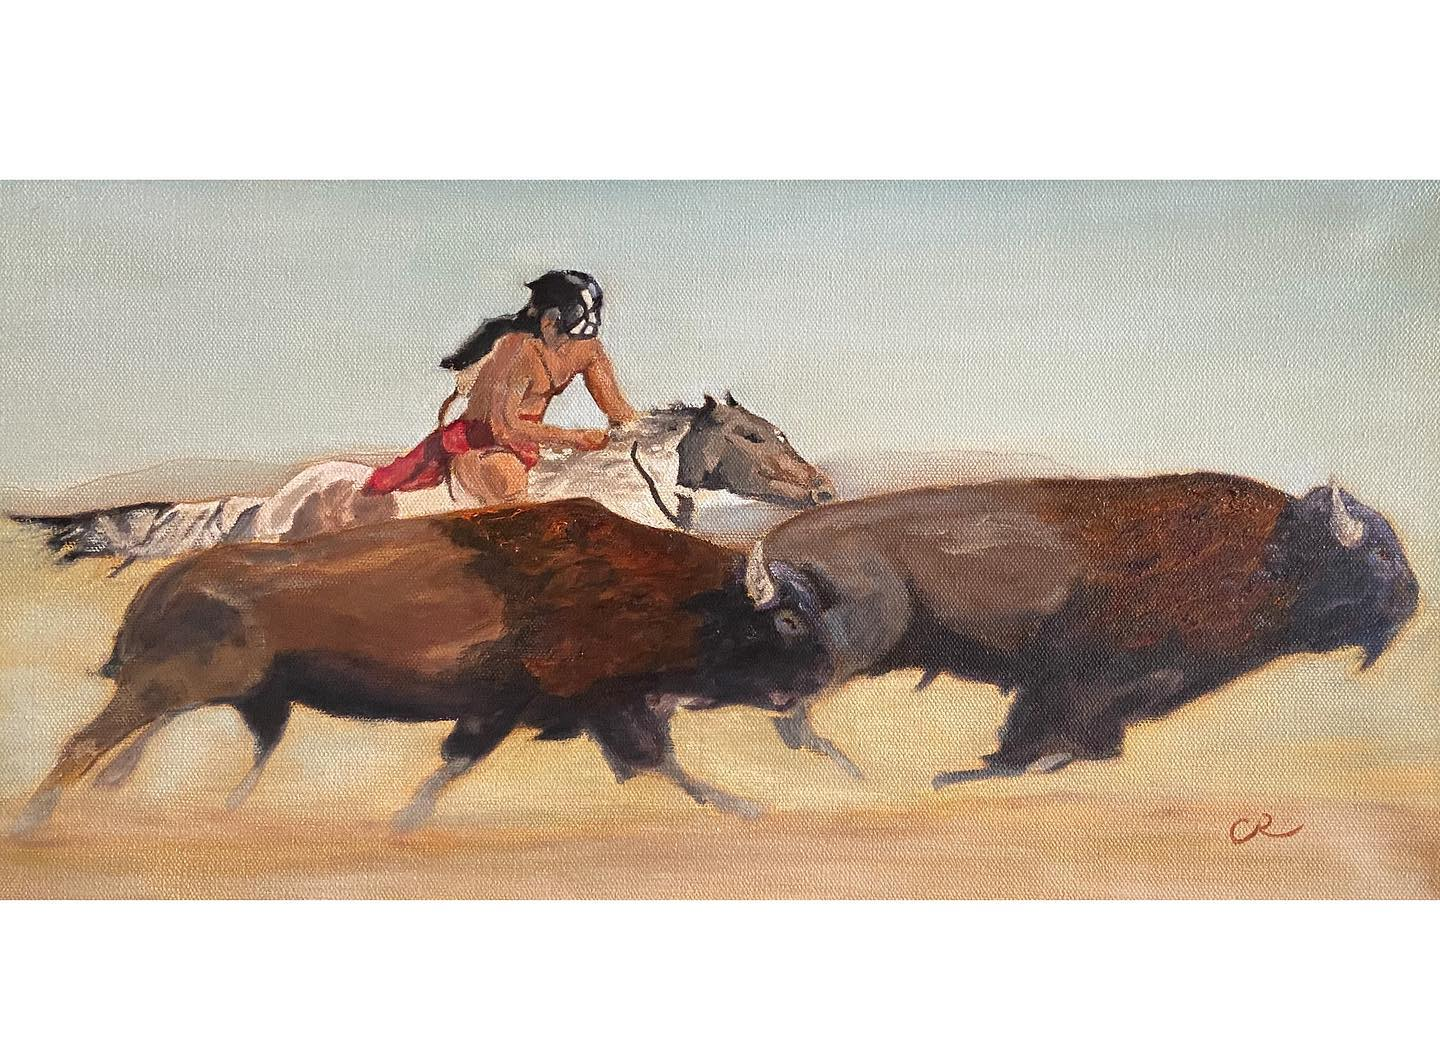 the great race oil on canvas by chris reecer